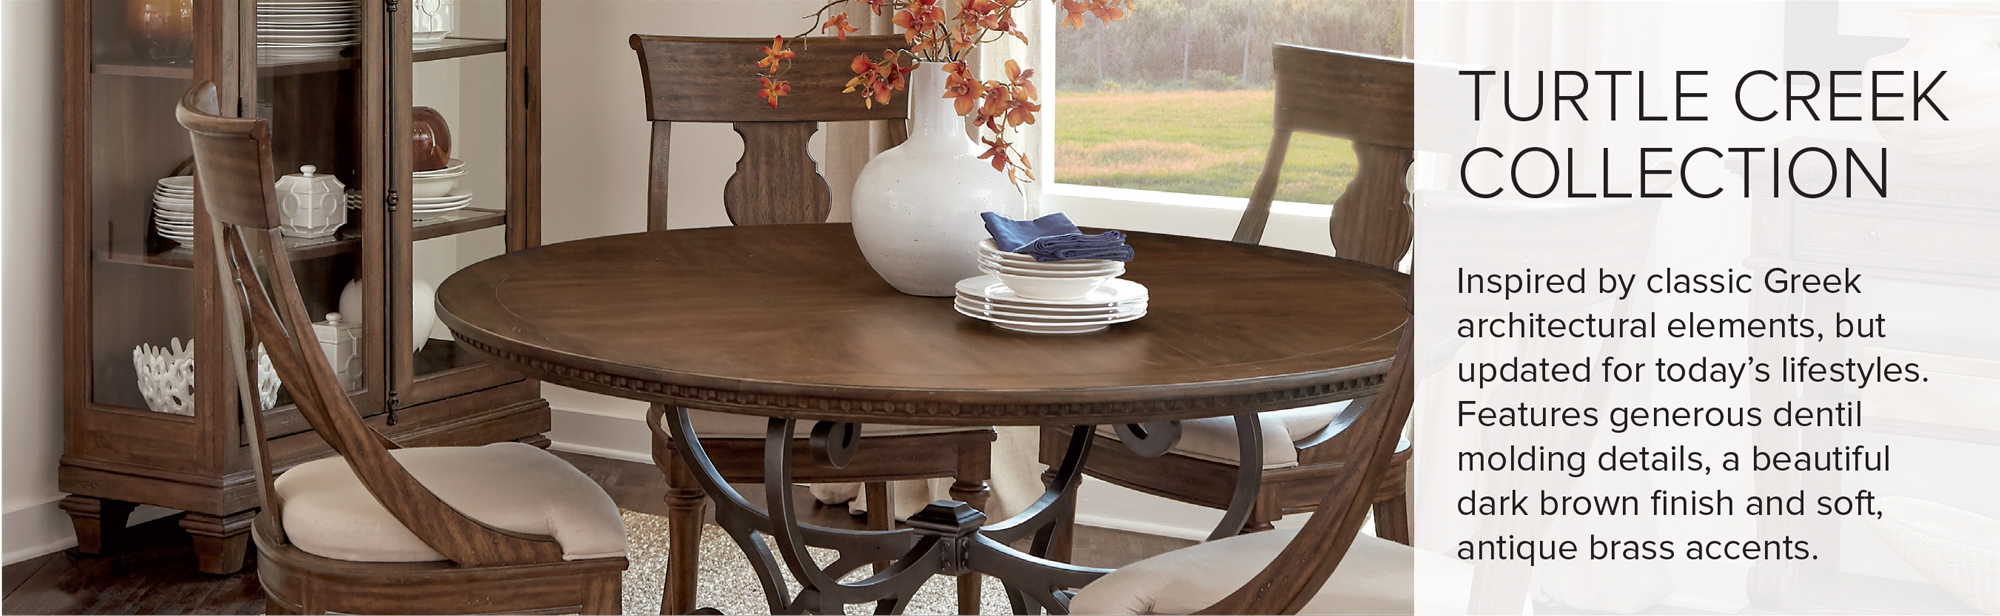 Hekman Turtle Creek Collection Category